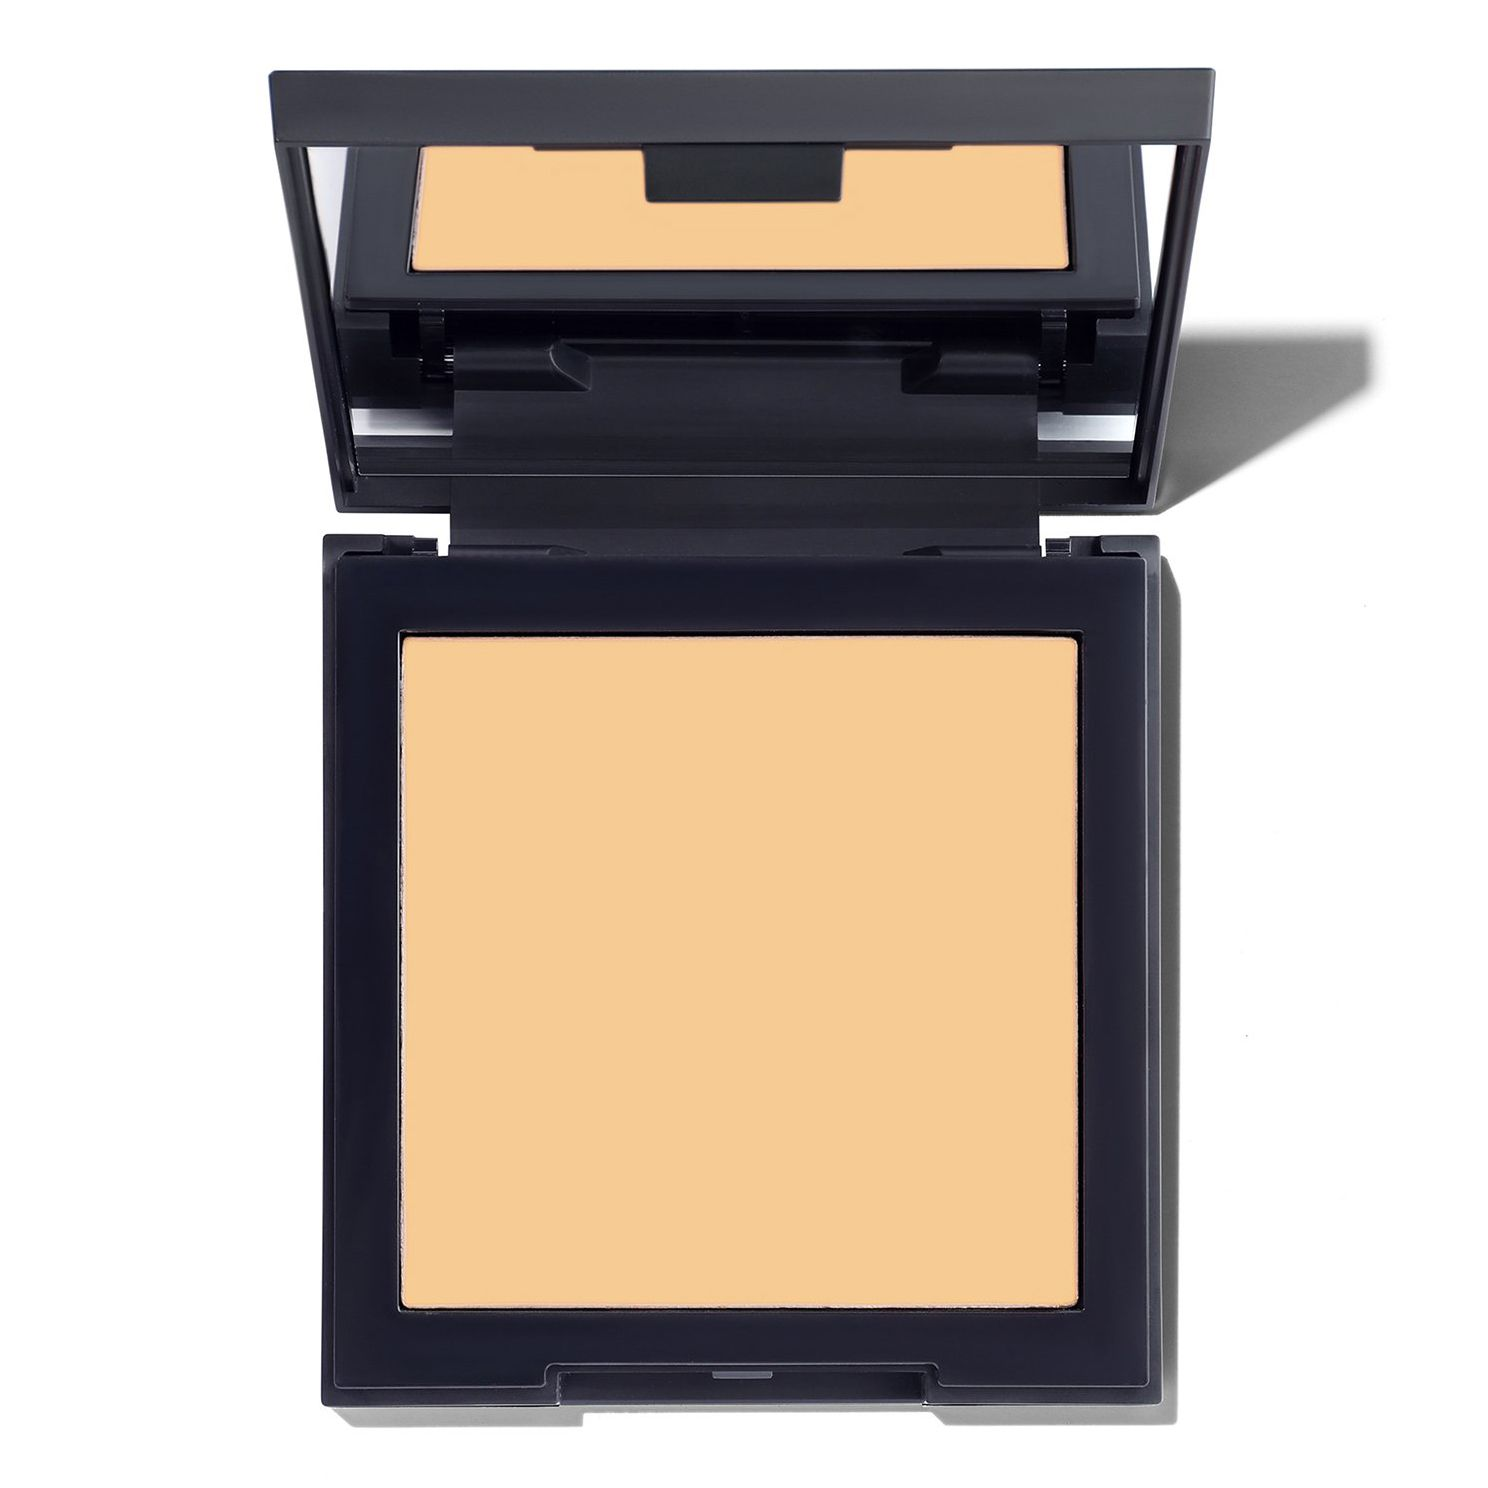 What is the best face powder for acne prone skin